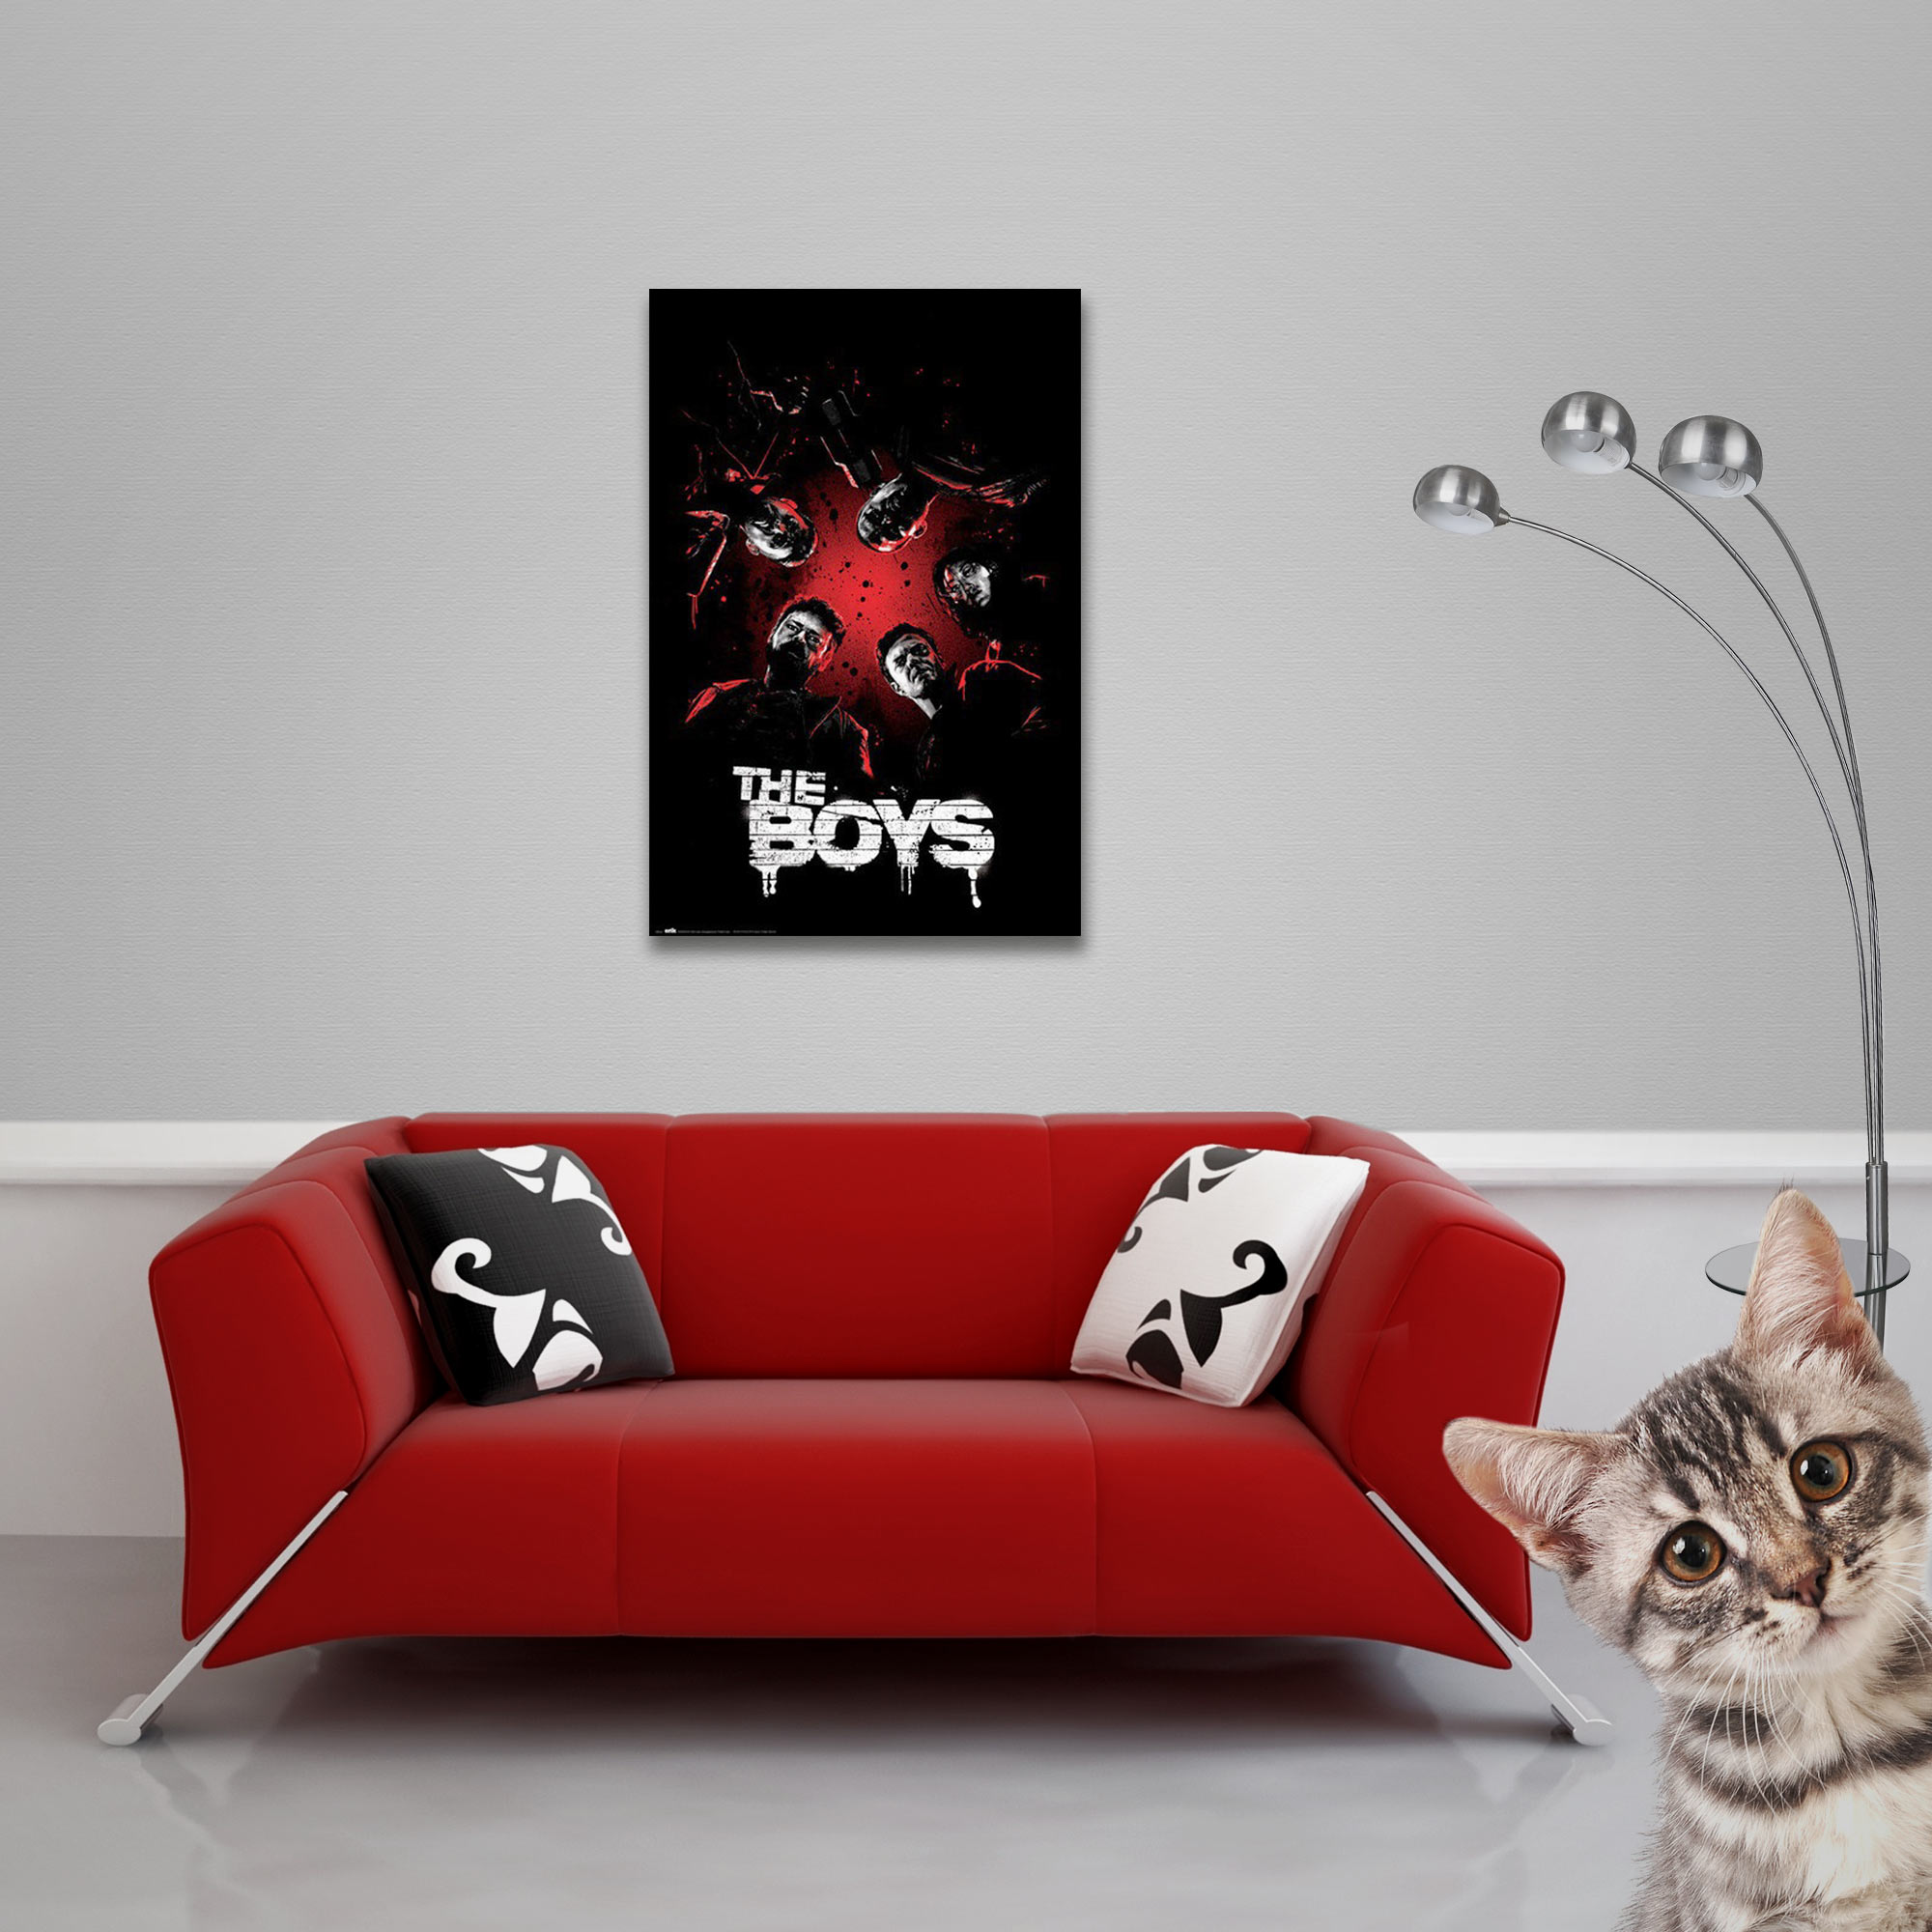 The Boys - Poster - One Sheet Vorschau Sofa